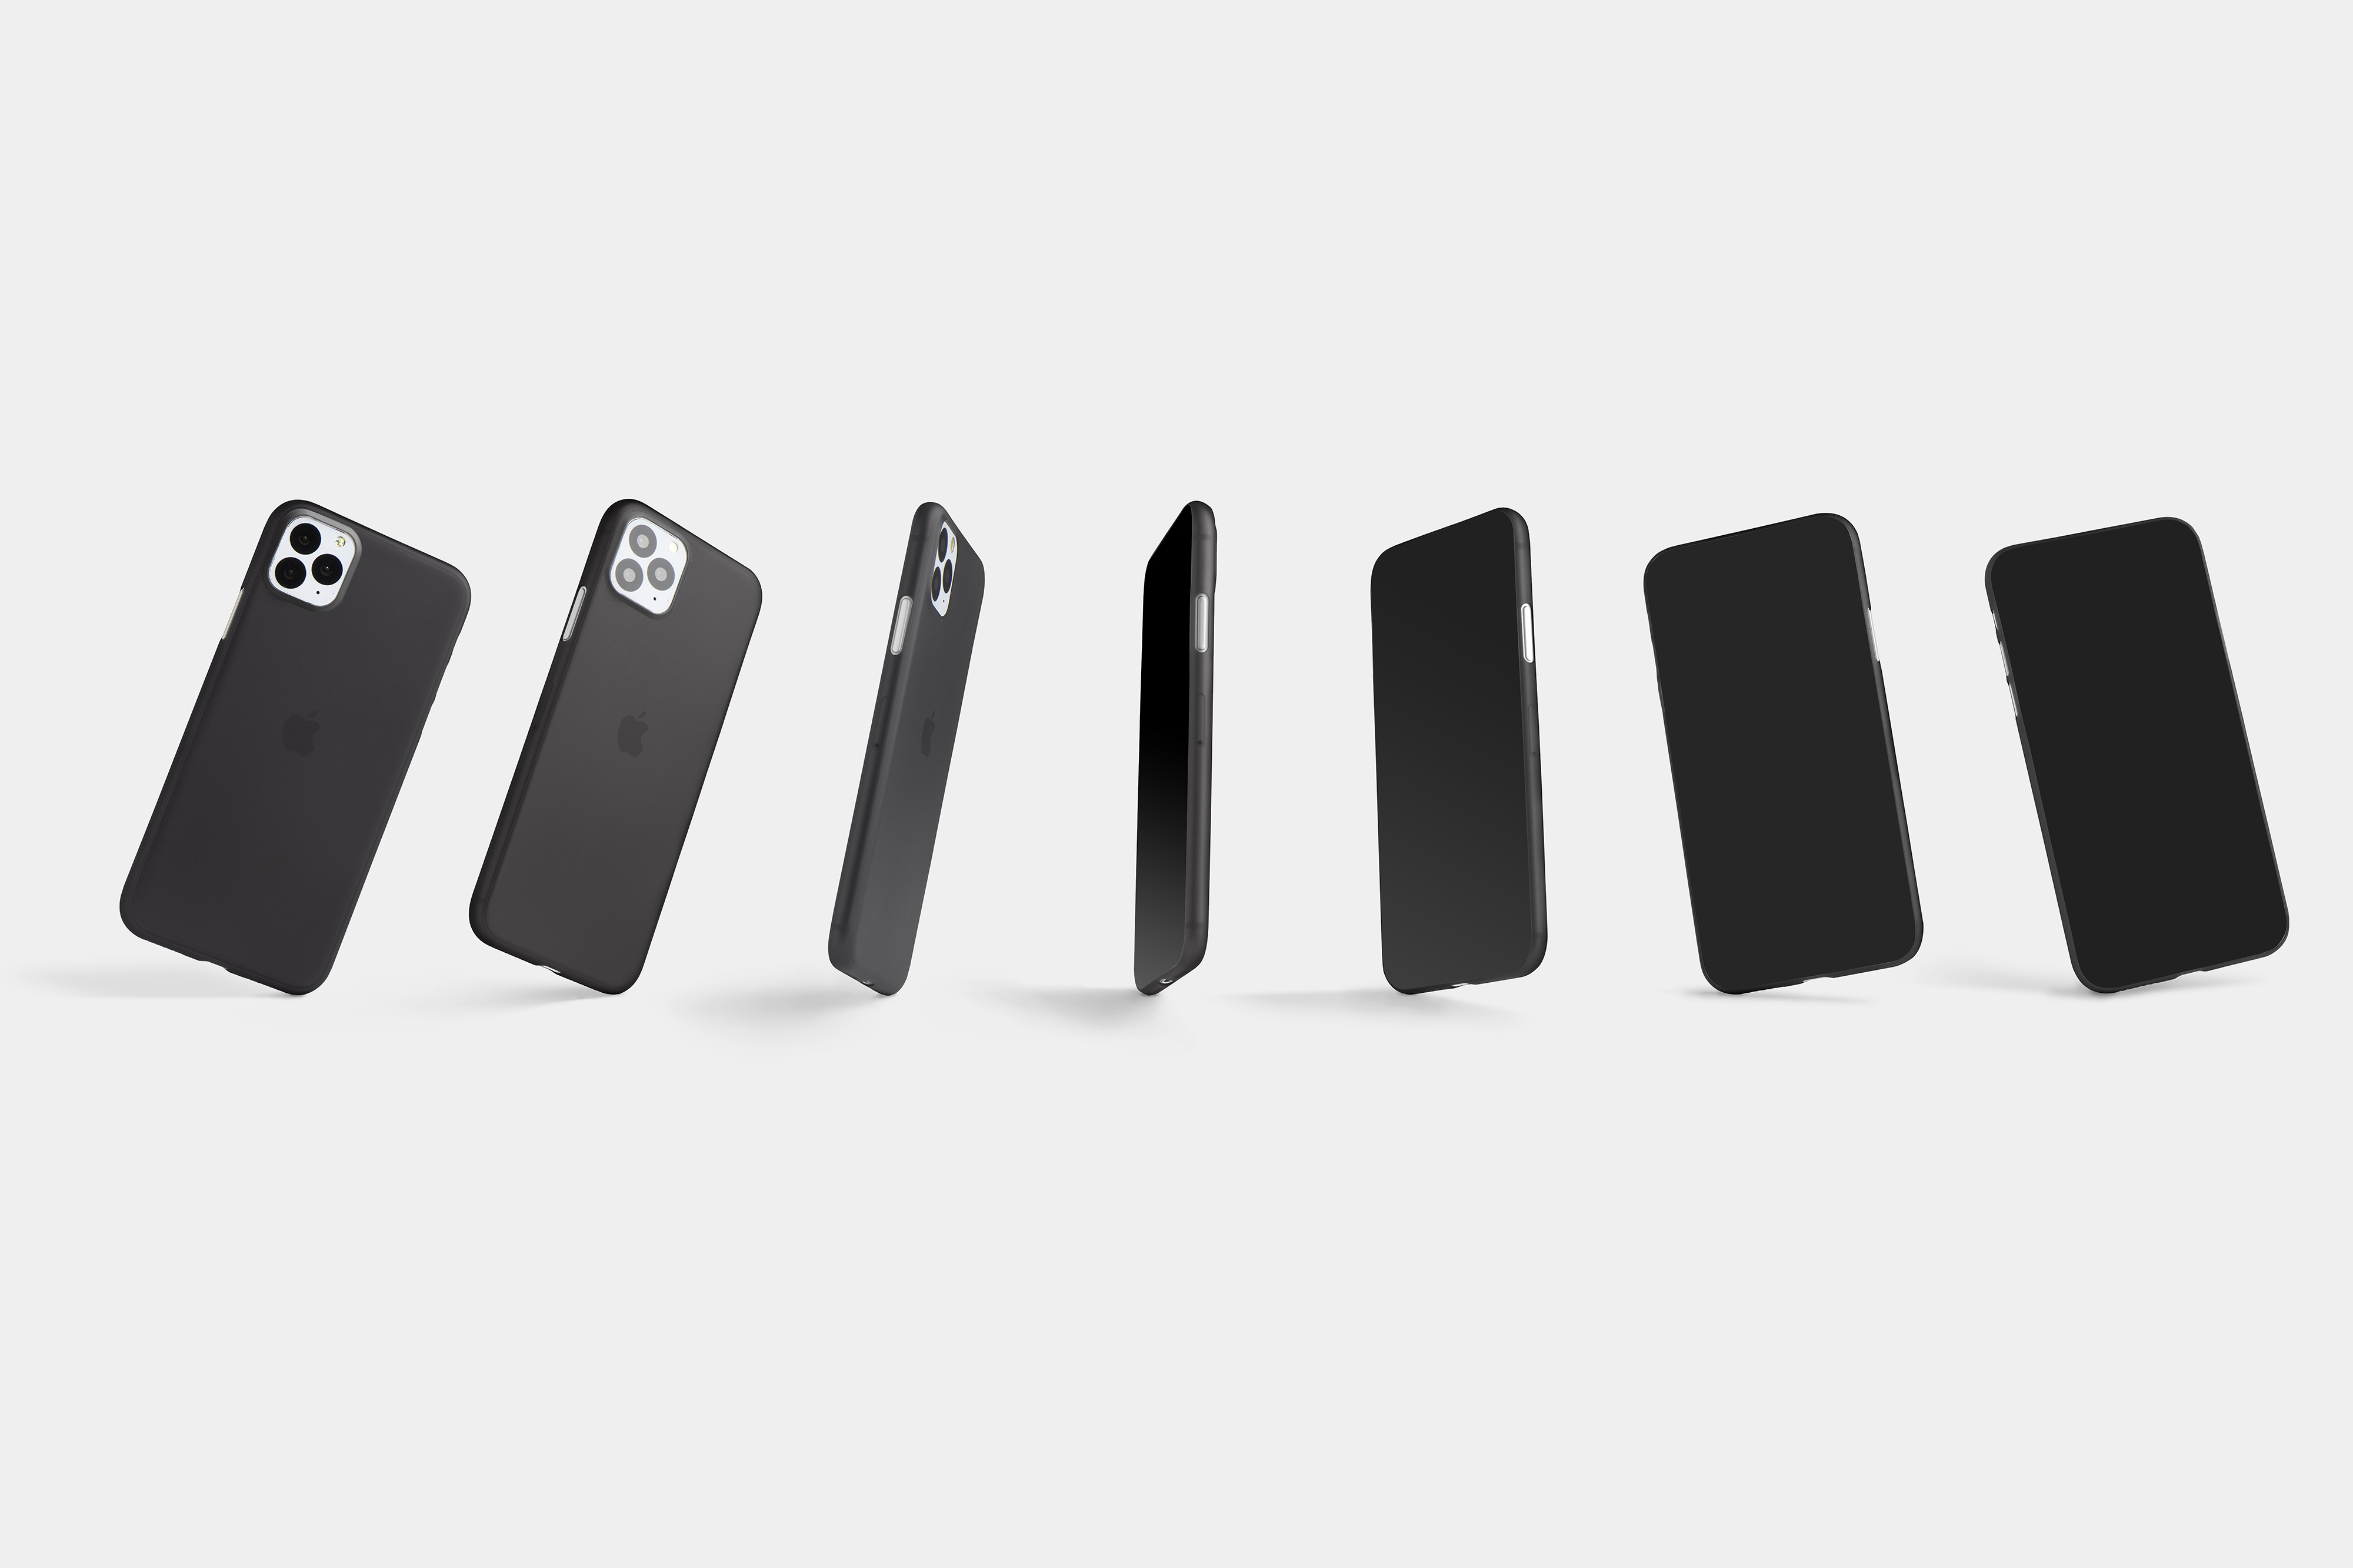 Totallee launches super thin cases for iPhone 11, iPhone 11 Pro, and 11 Pro Max - 9to5Mac